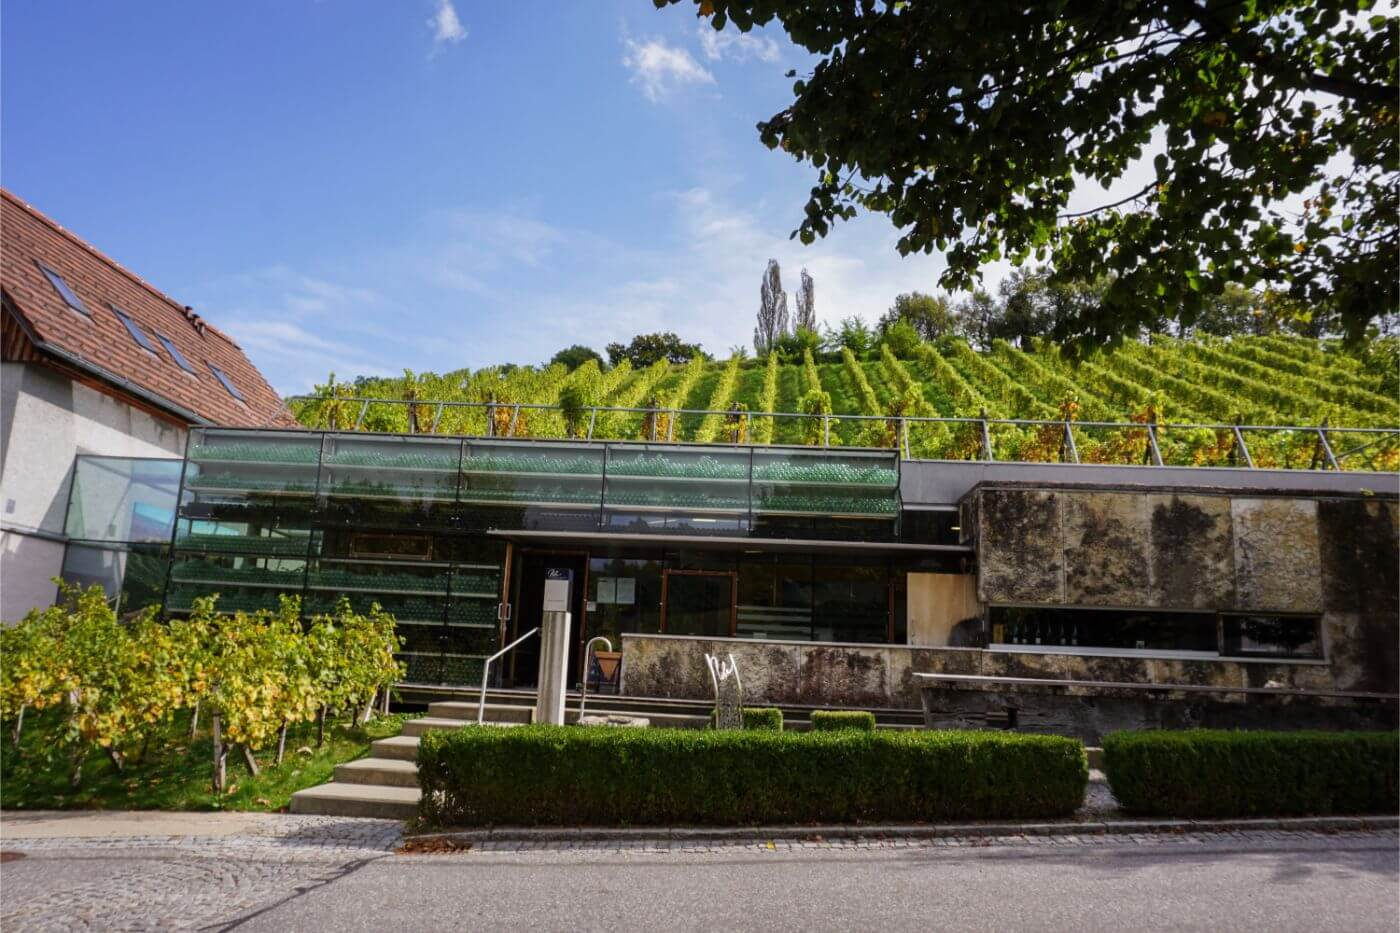 Weingut Erich & Walter Polz, Wineries in South Styria, Austria